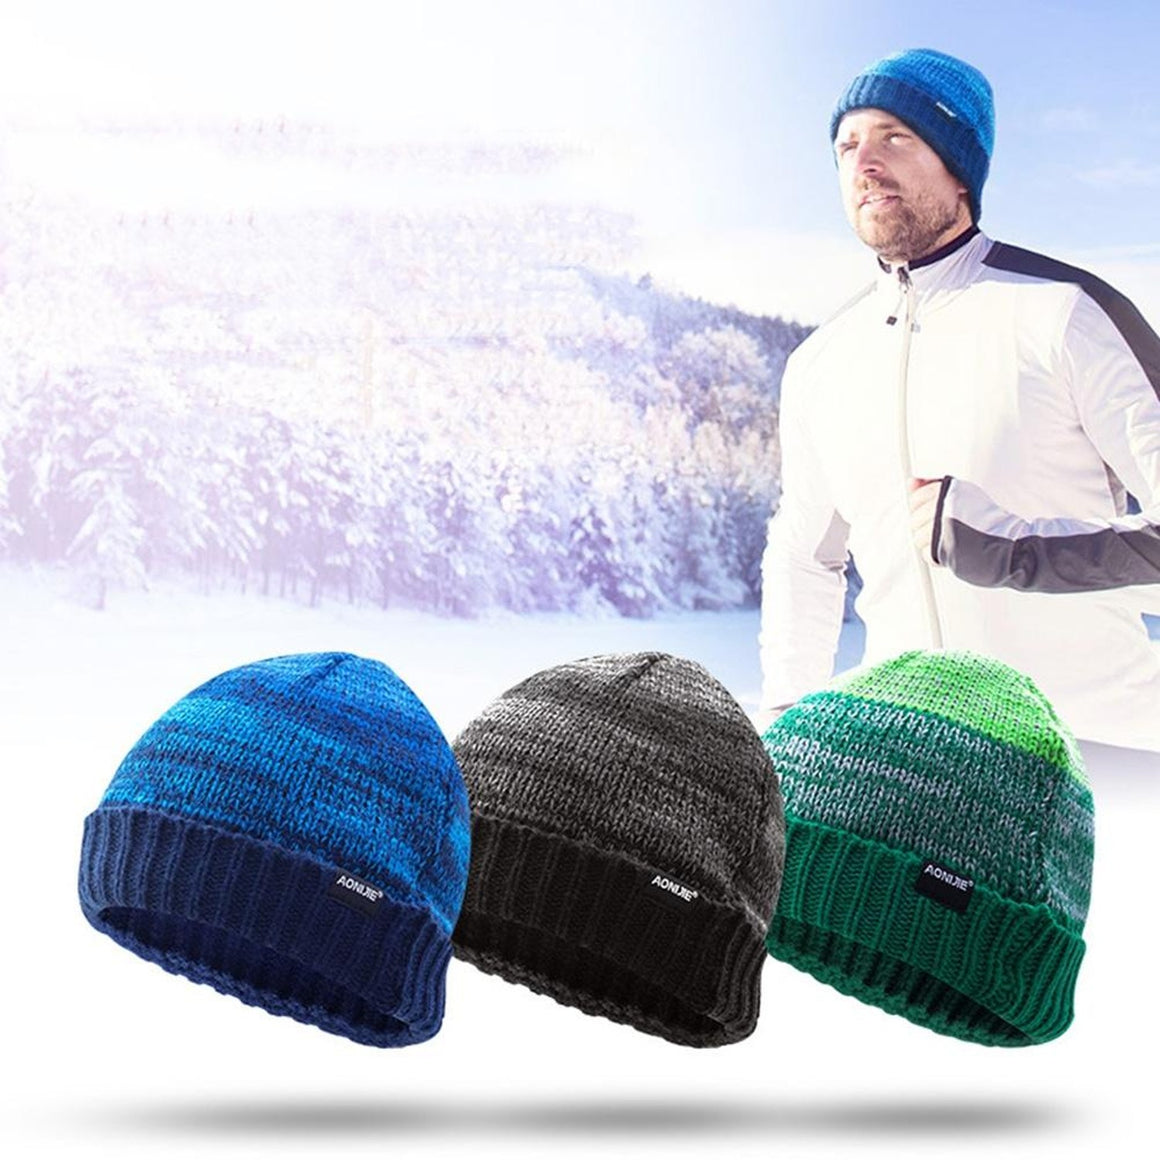 AONIJIE Men Women Keep Warming Knitting Sports Winter hiking hat Comfortable Riding Snowboard Hat Running Hiking Cap